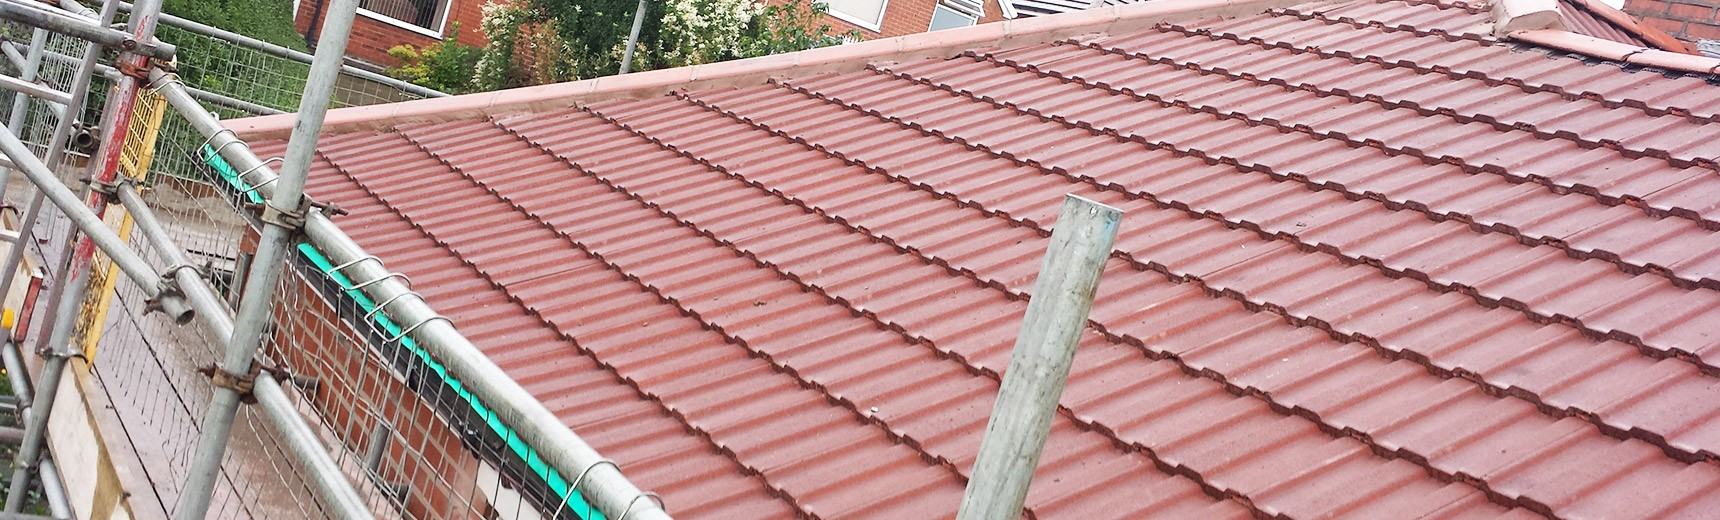 Leicester roofing